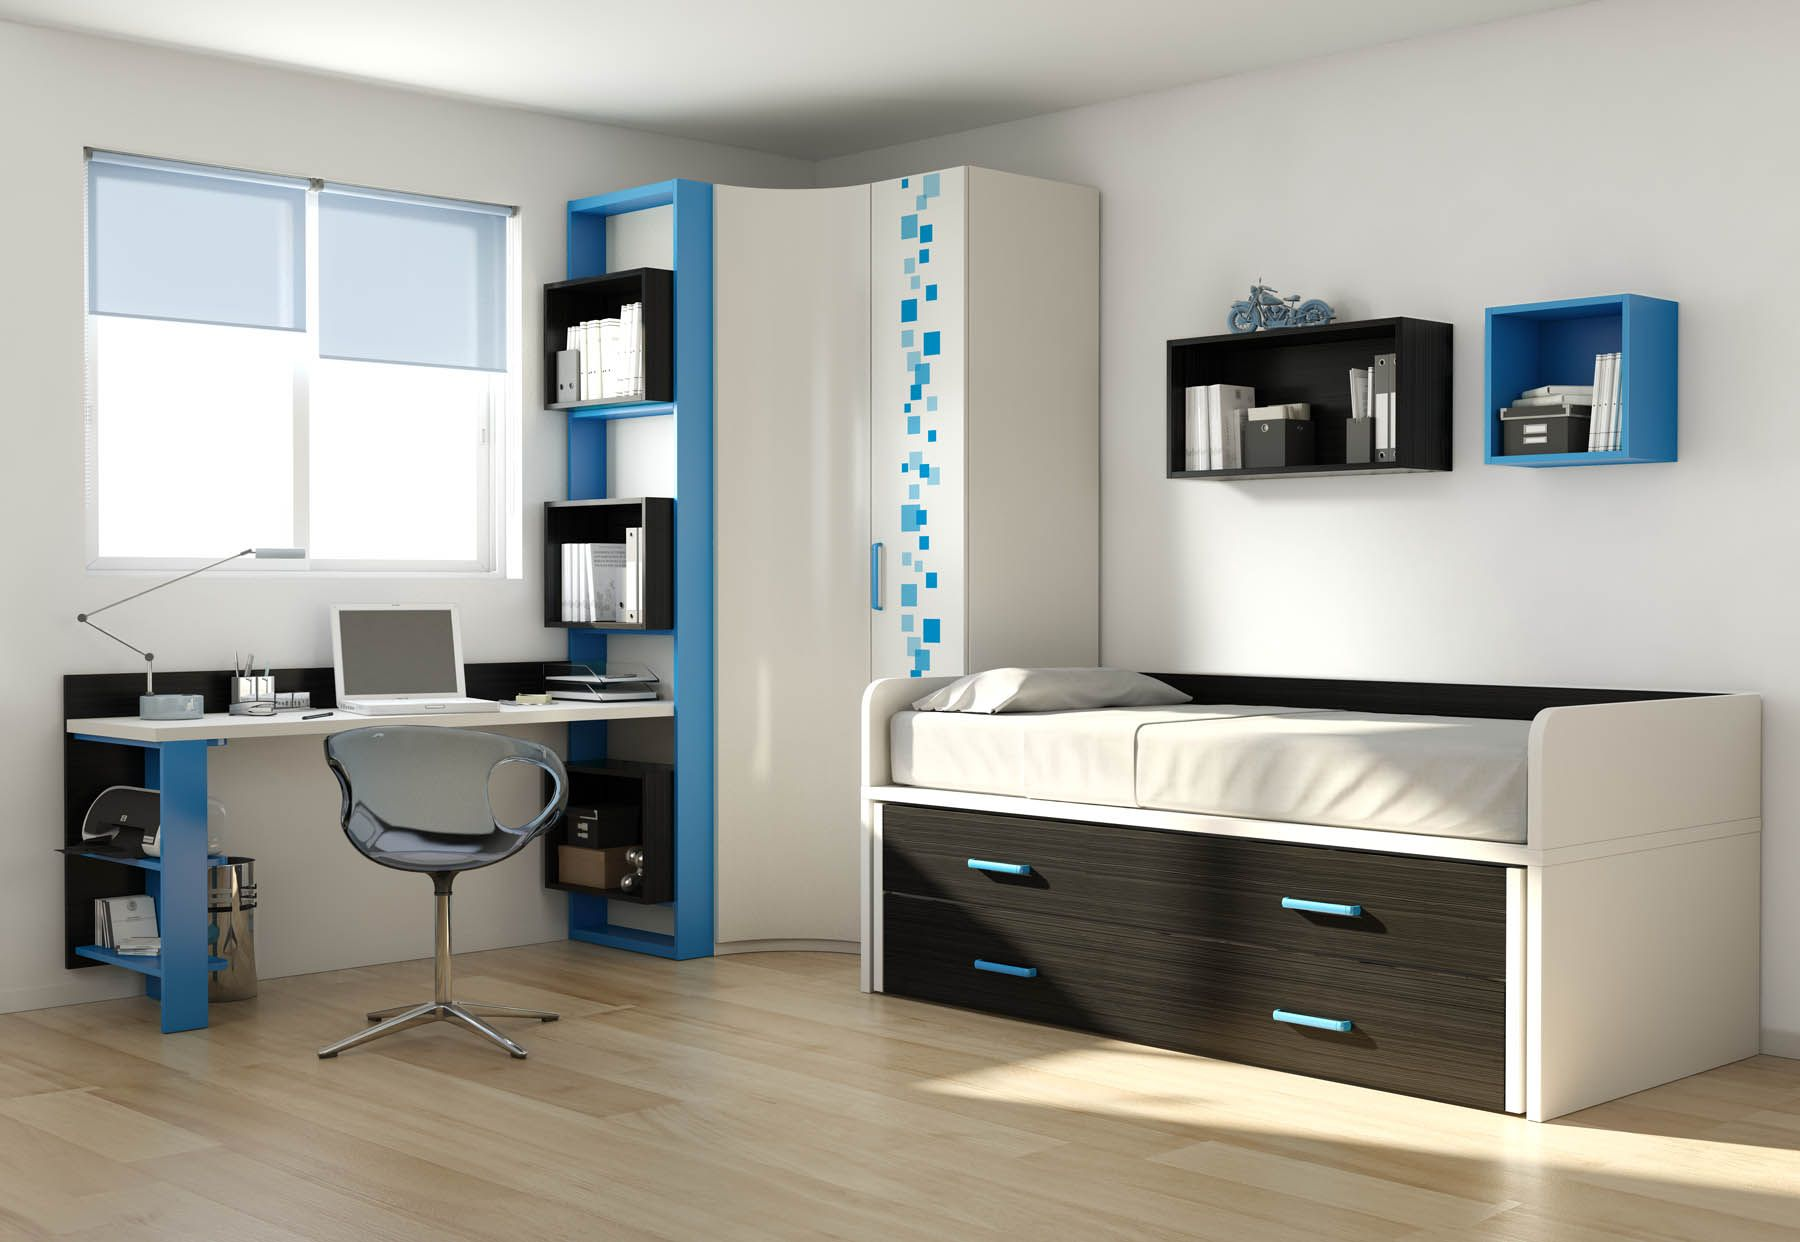 Buy modern wooden wardrobe online in india low prices Shop now